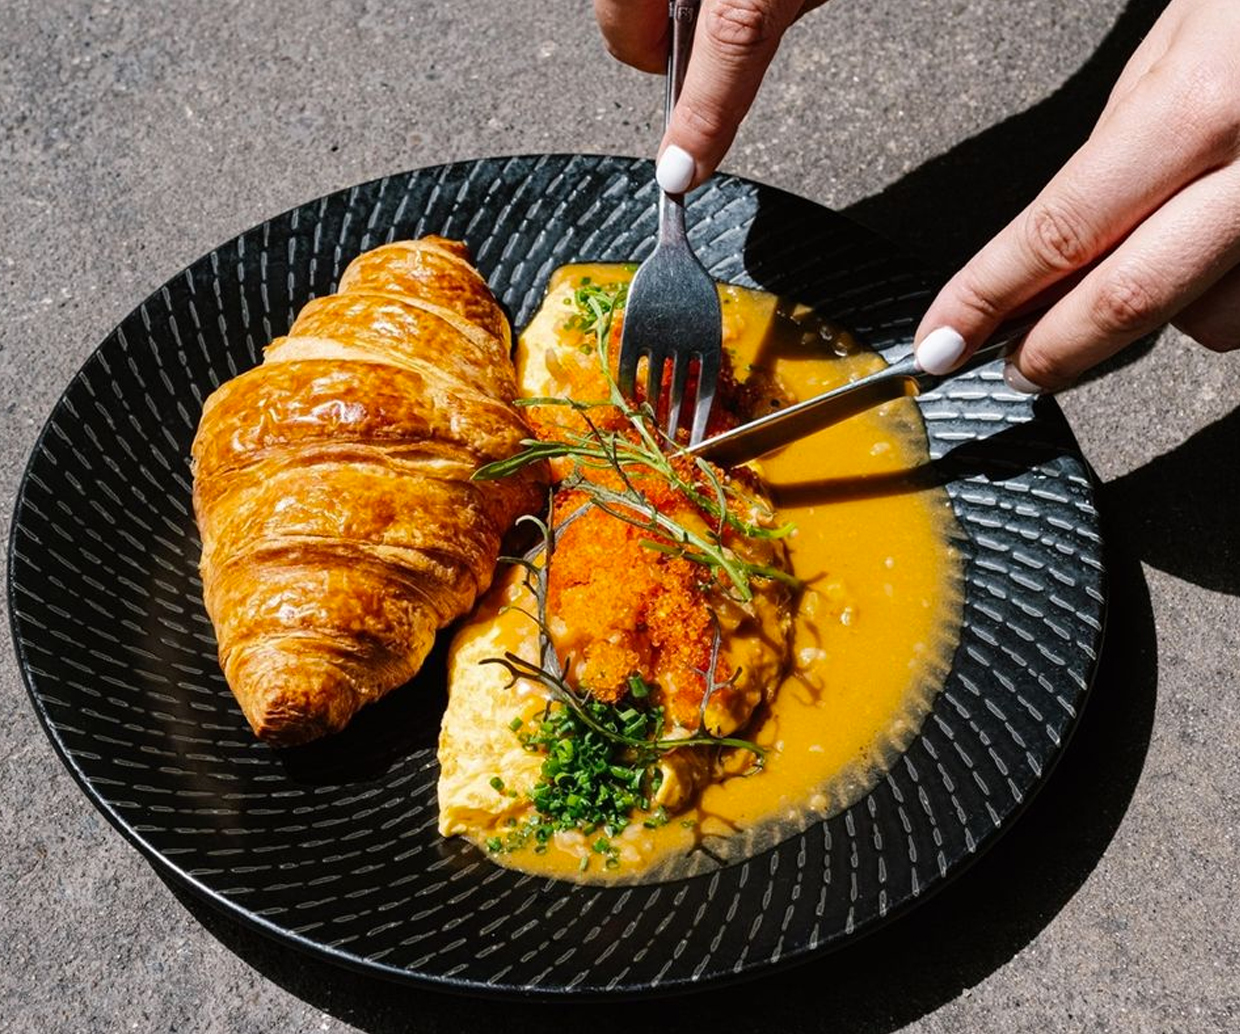 omurice and croissant